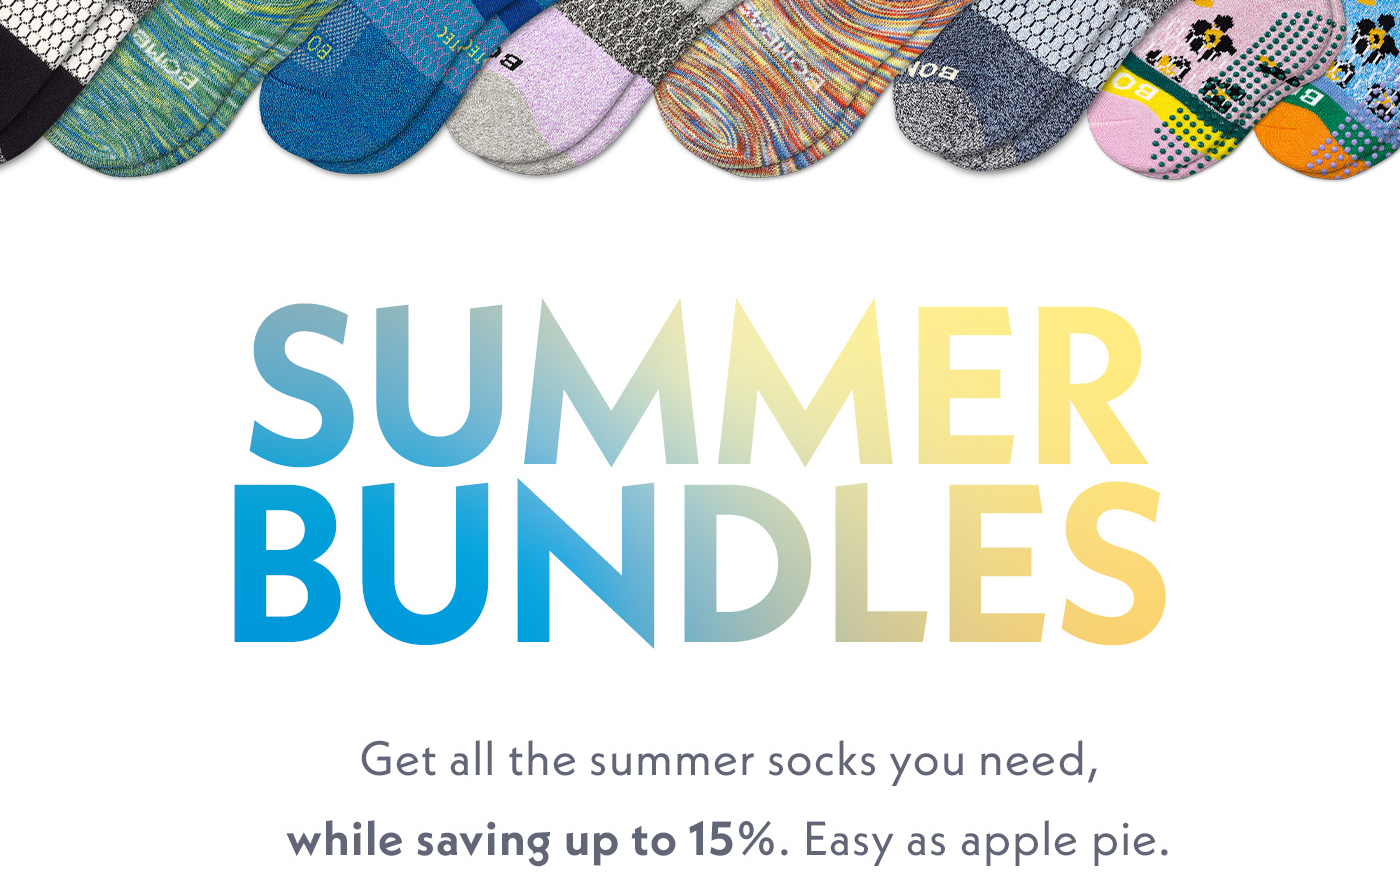 Summer Bundles | Get all the summer socks you need, while saving up to 15%. Easy as apple pie.